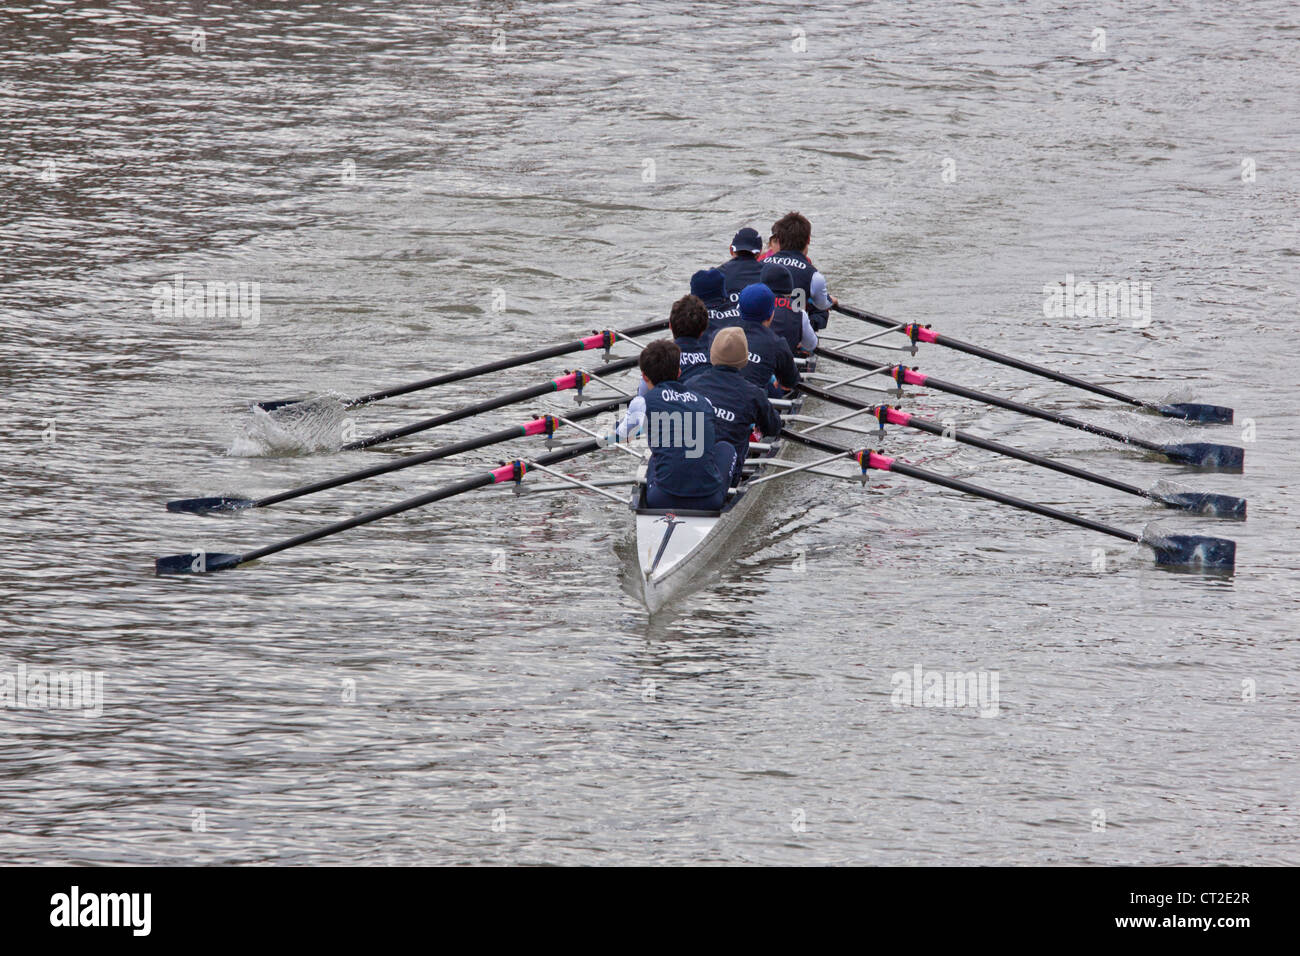 Crew from Oxford racing in the annual Head of the River race in Bristol, England in February 2012 - Stock Image